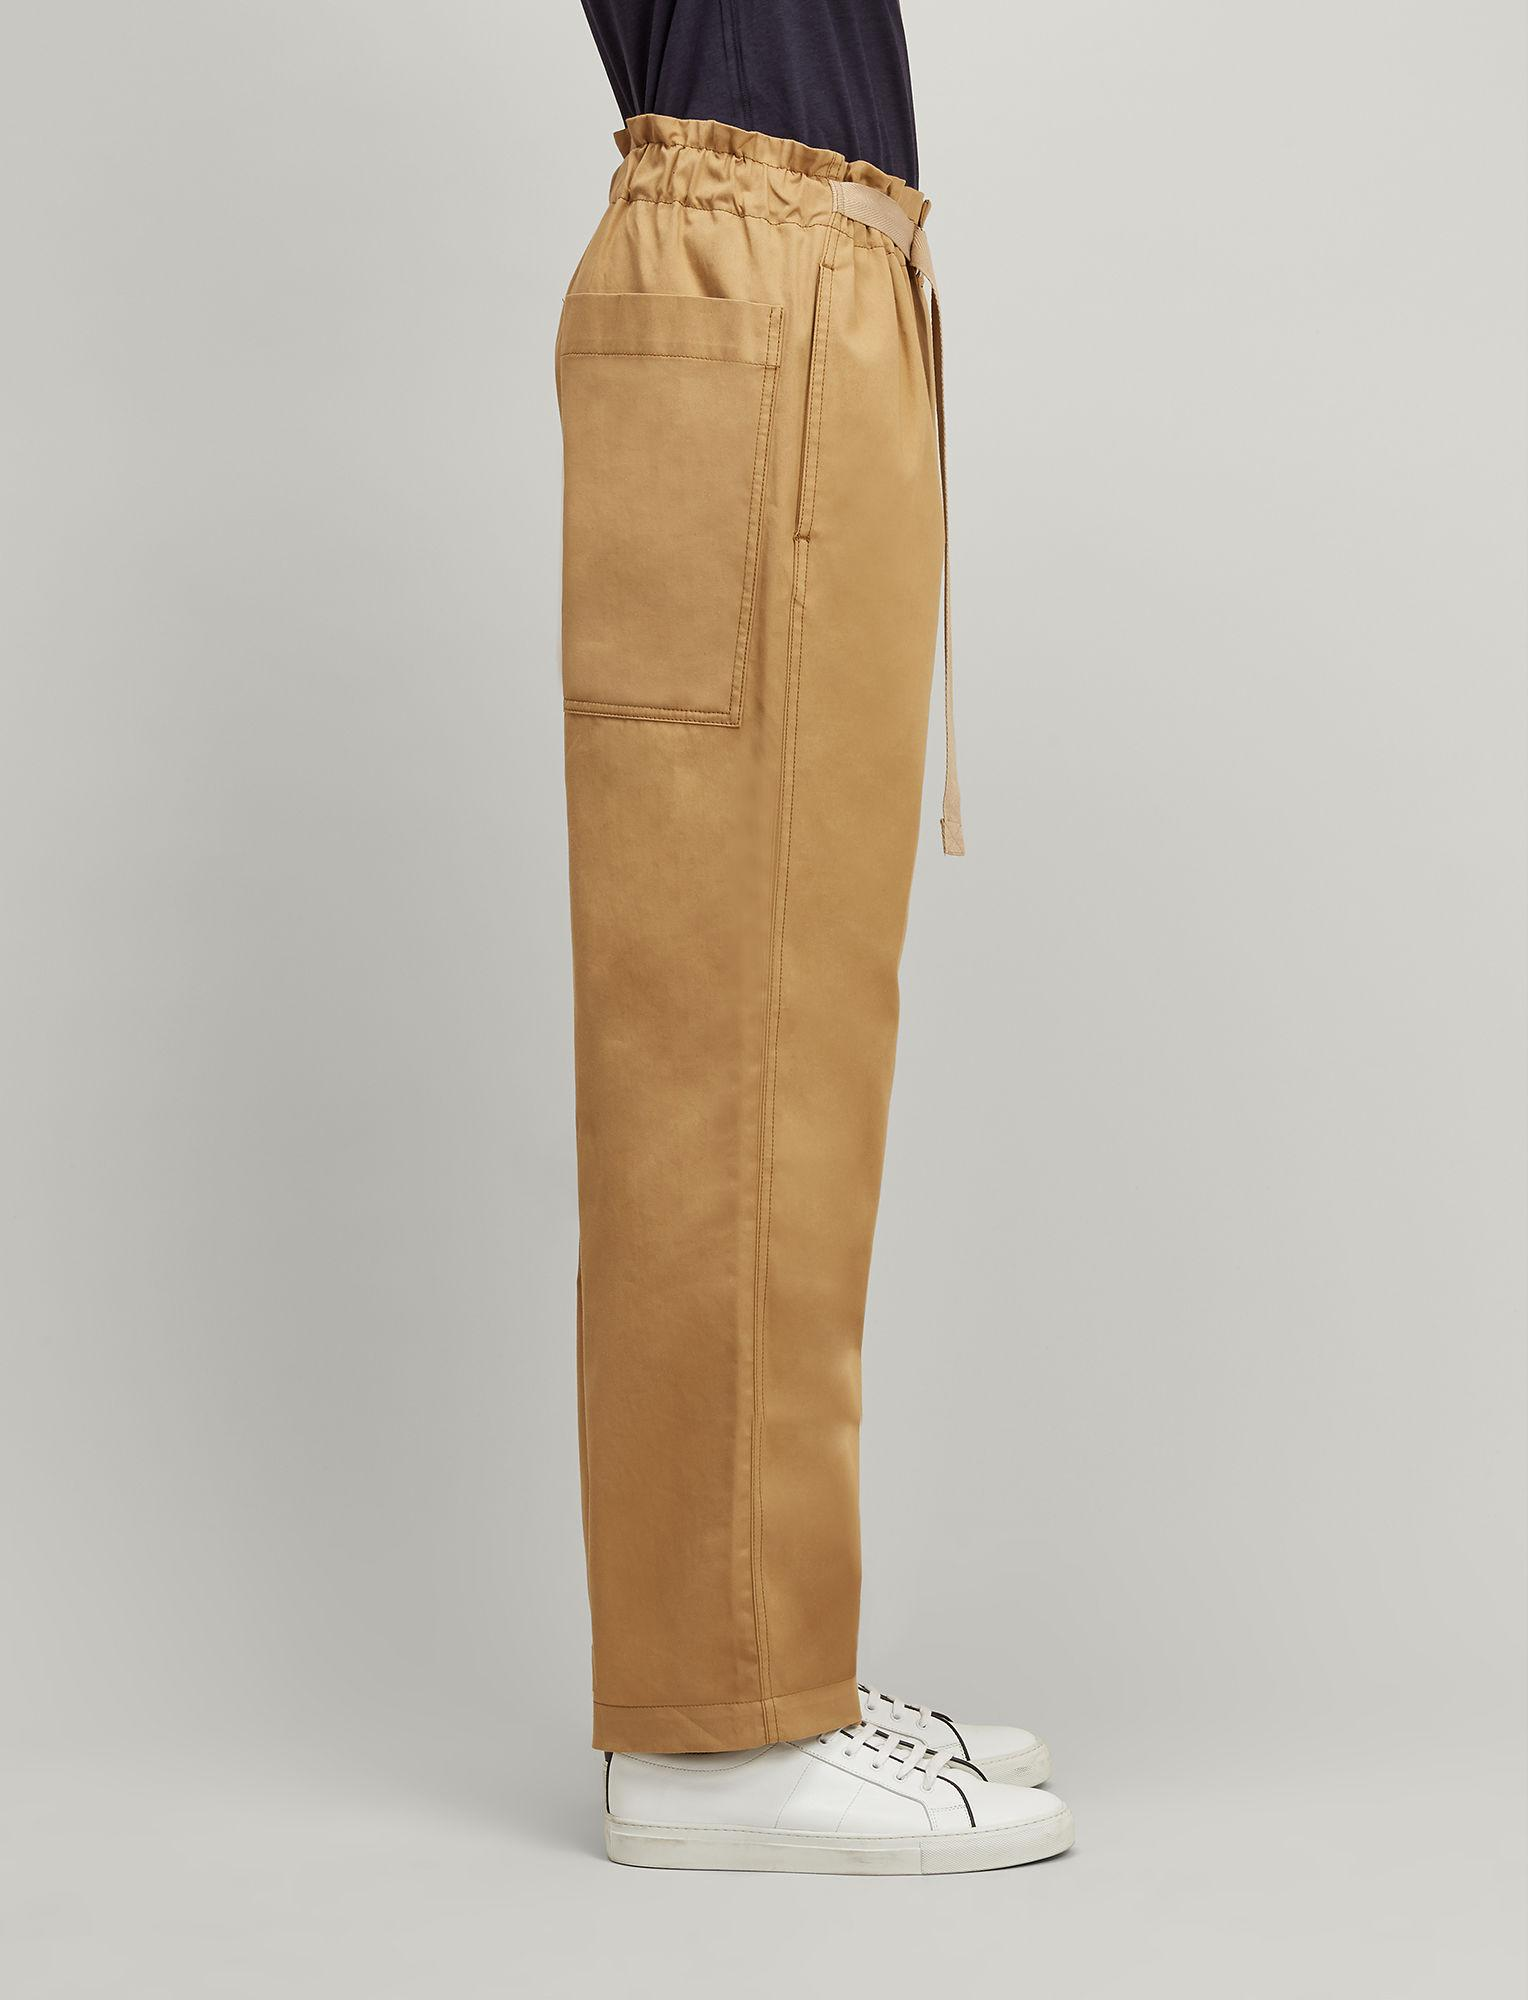 JOSEPH Cotton Twill Chino Luis Trousers in Camel (Natural) for Men